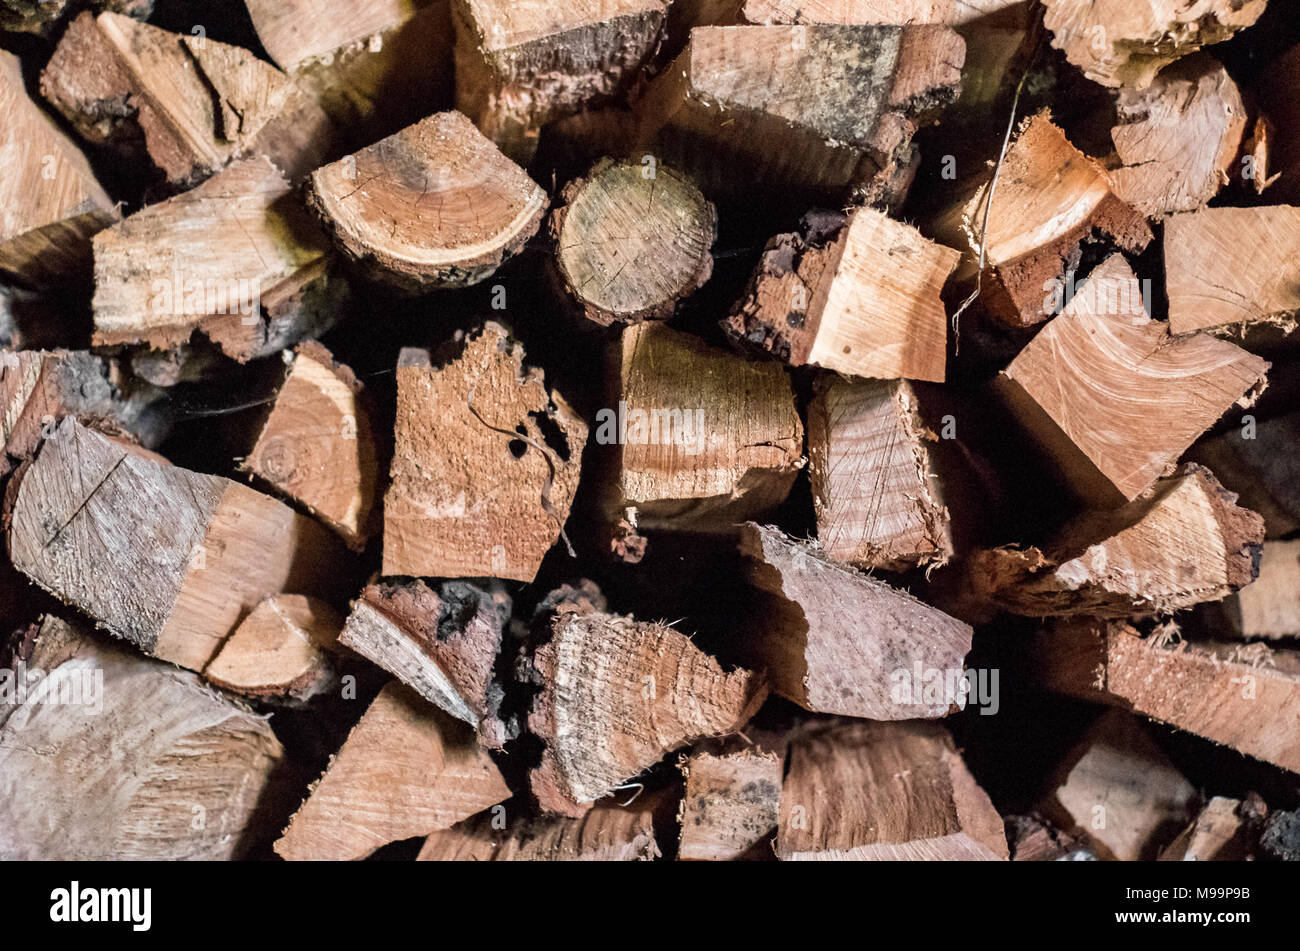 Preparing for winter and making cold season warmer concept: stack of firewood as a graphic resource for natural background - Stock Image